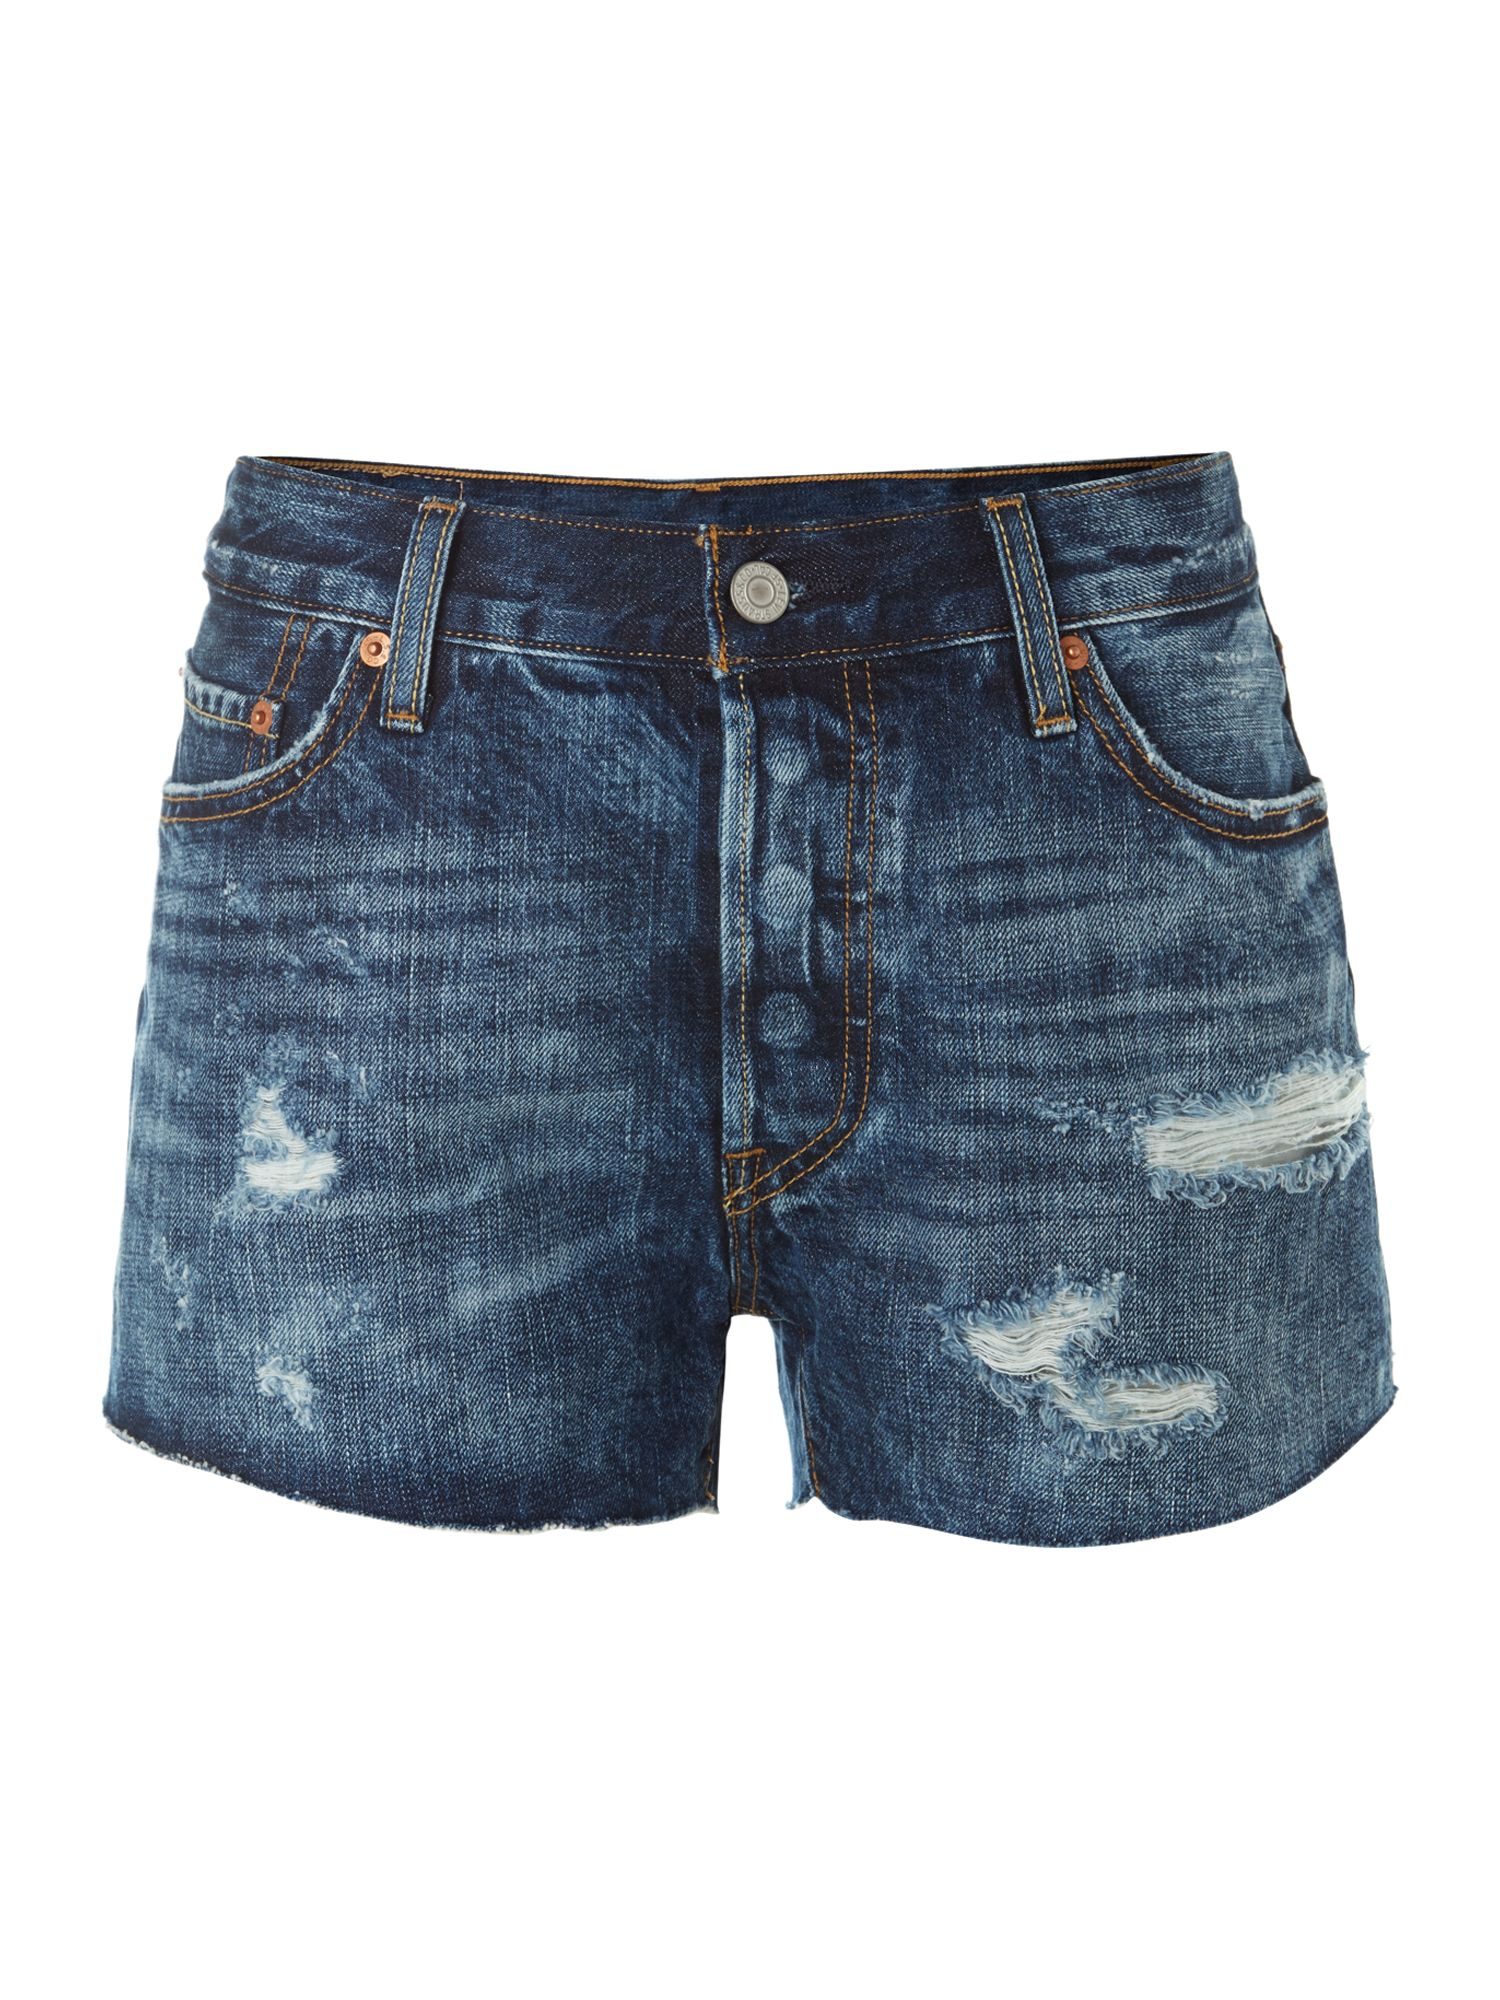 501 cut off shorts in authentic destruction